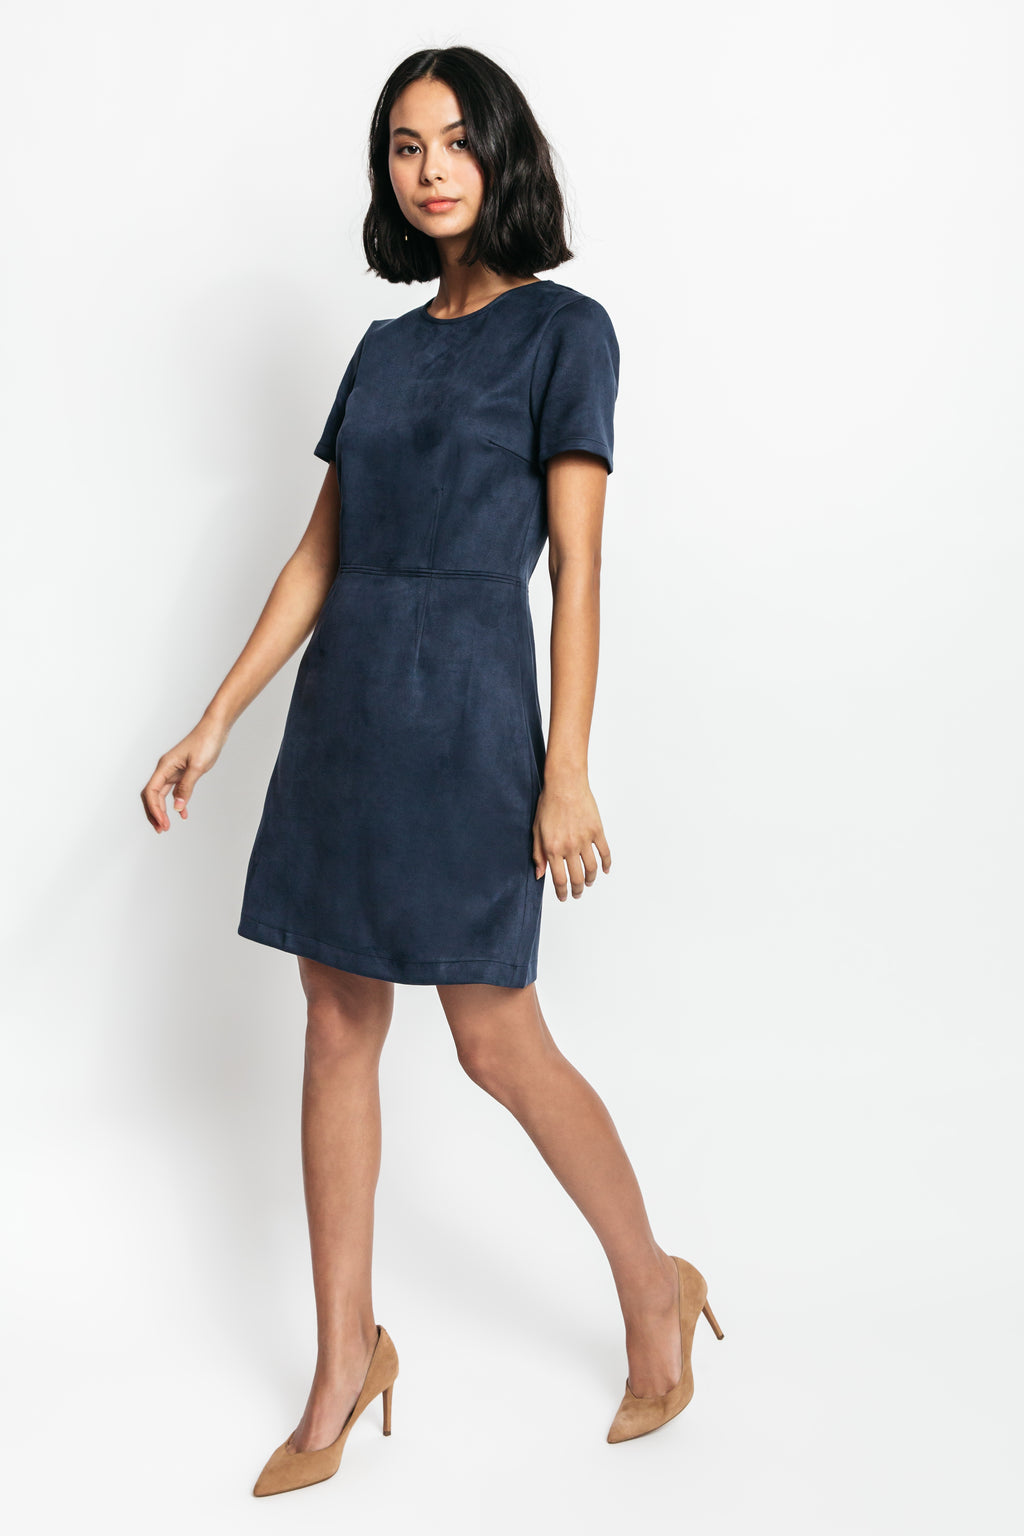 Shari Faux Suede Sheath Dress